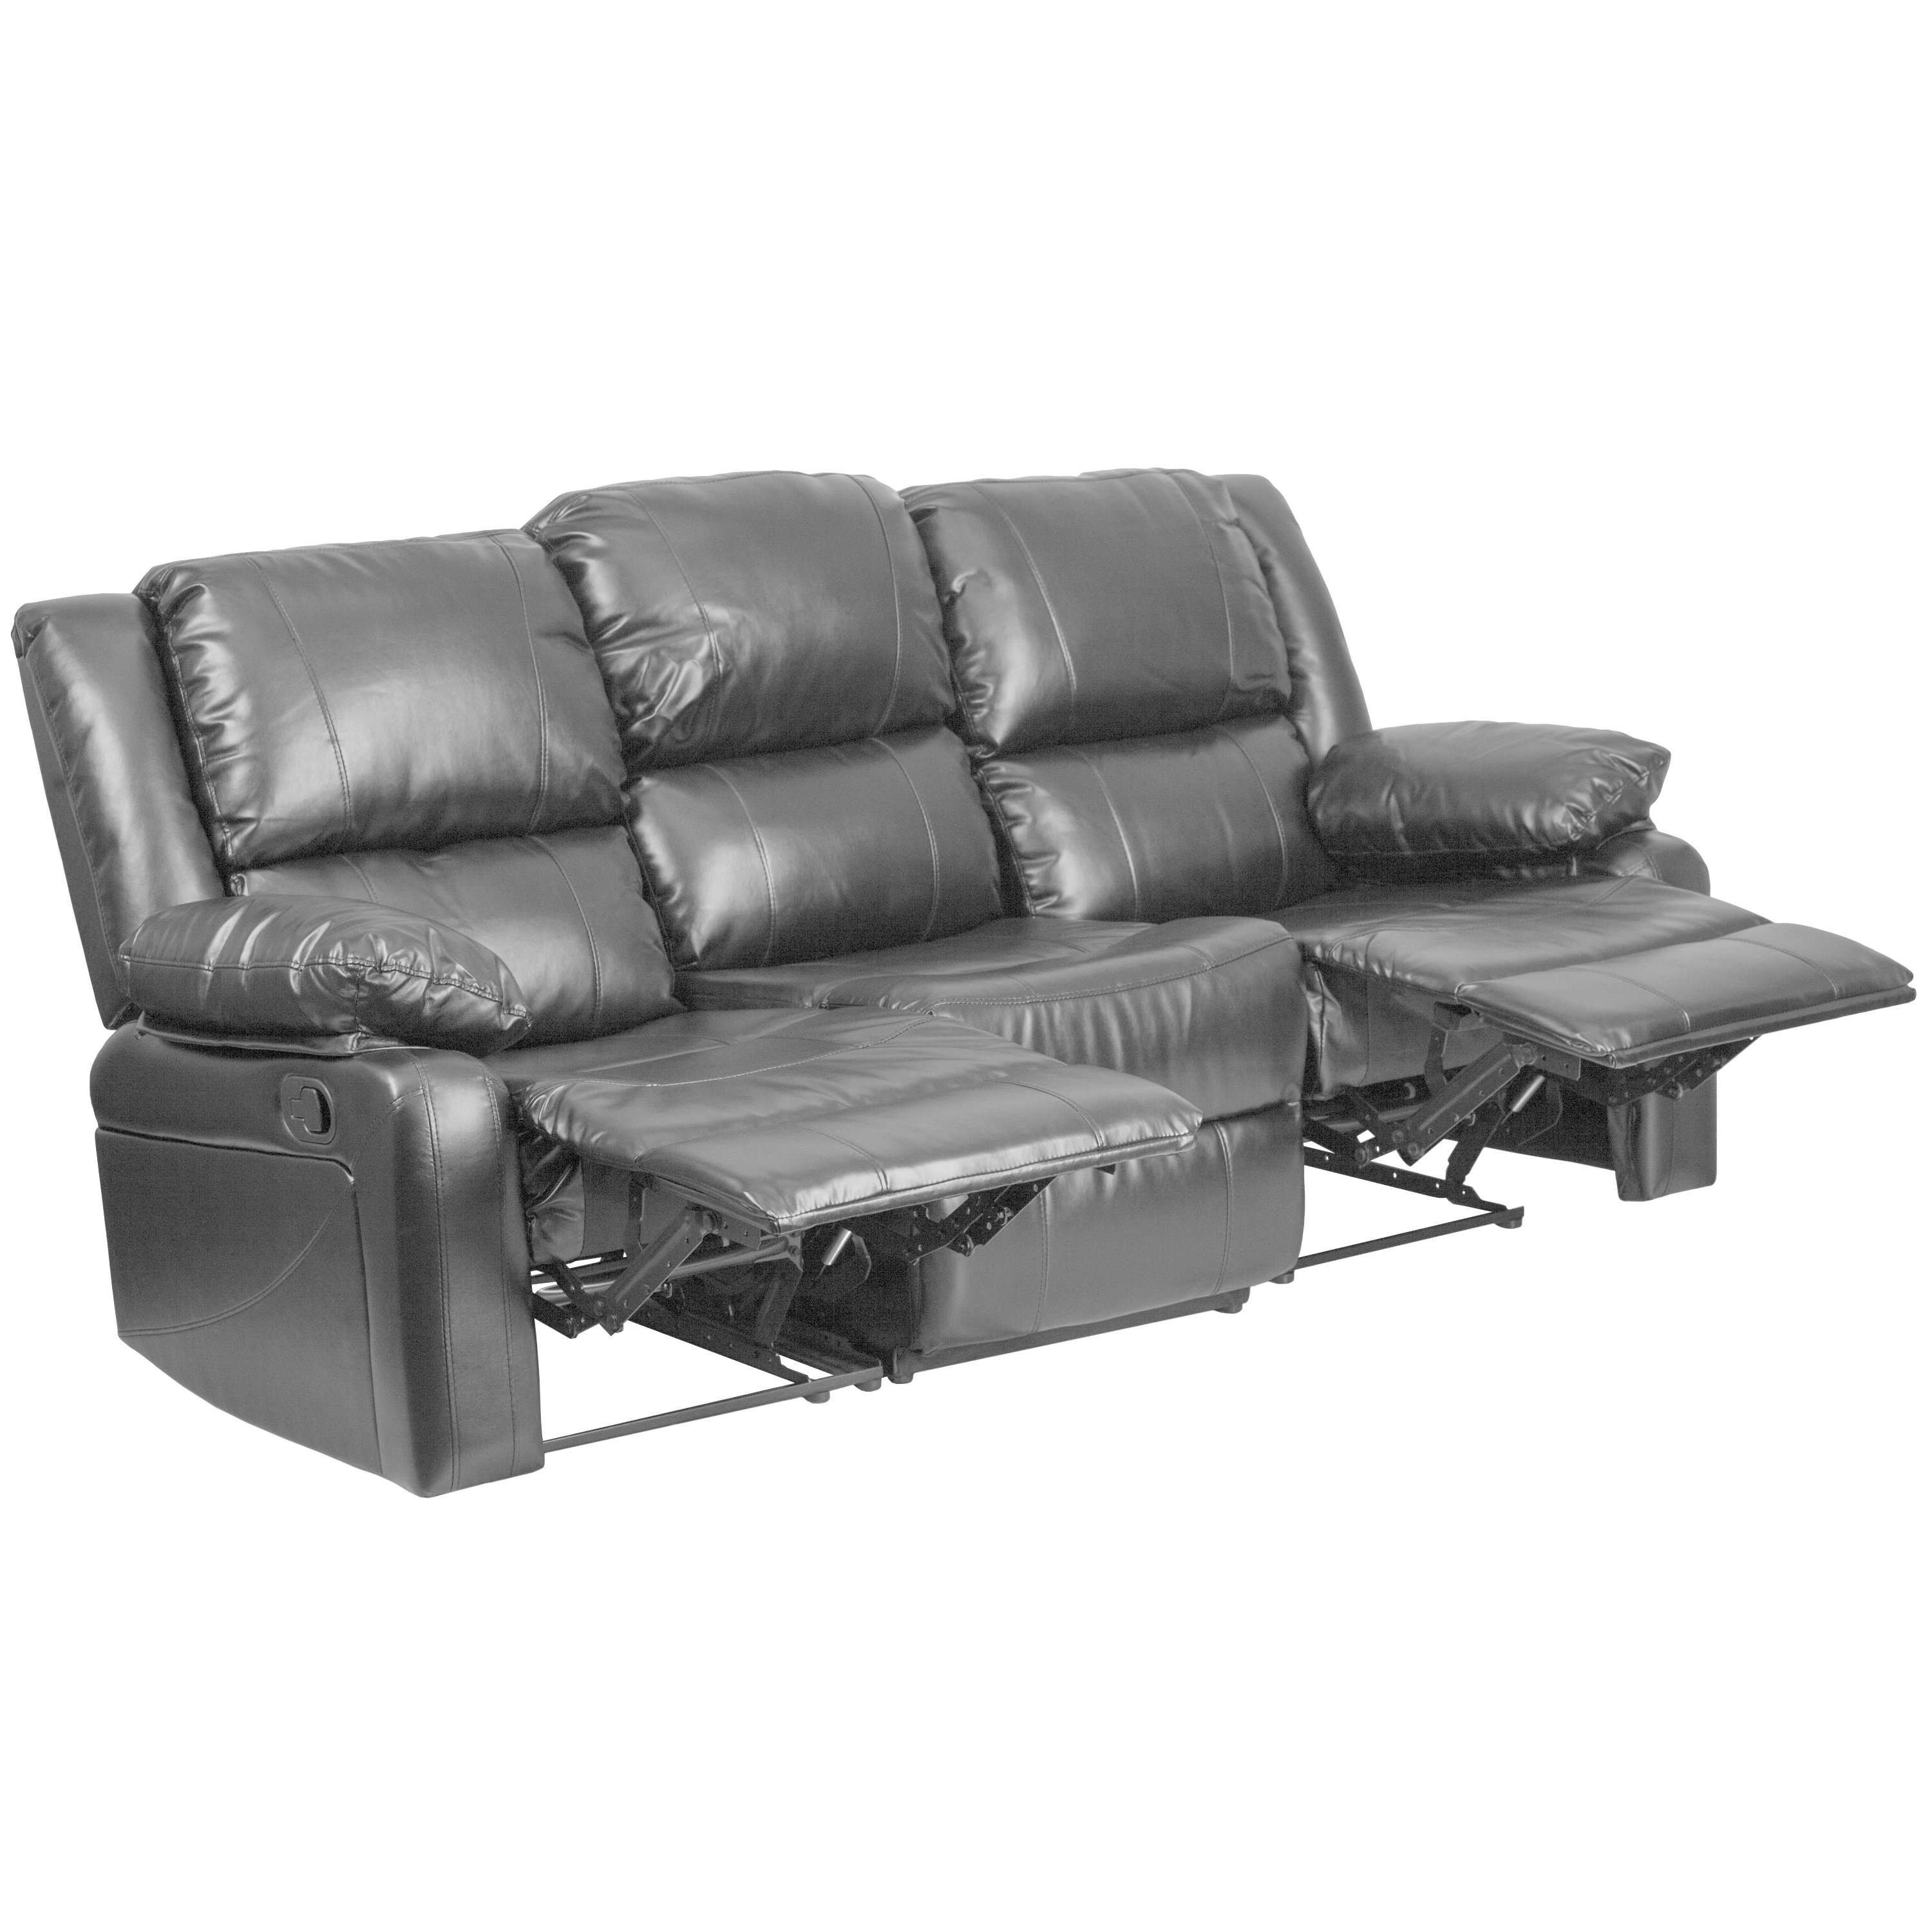 Shop Copper Grove Malheur Leather Sofa with Two Built-in Recliners - Free  Shipping Today - Overstock - 20340373